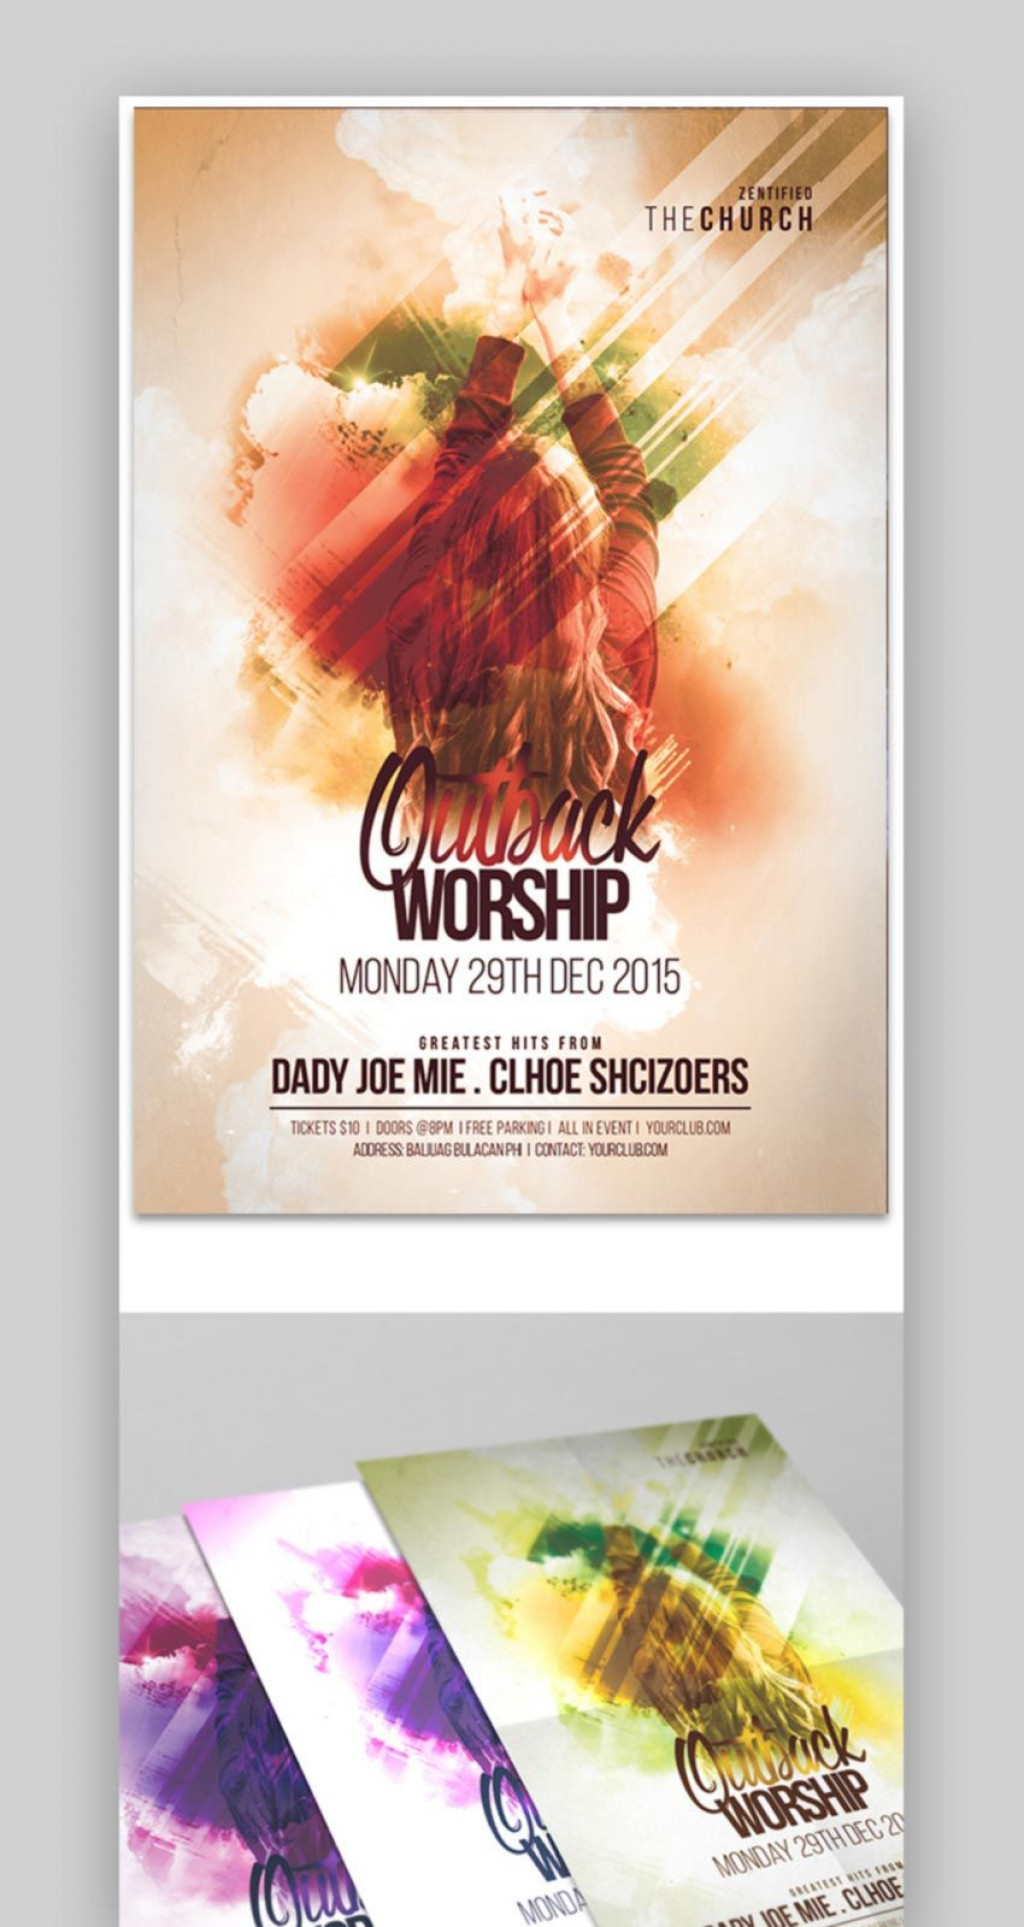 010 Wonderful Church Flyer Template Free Inspiration  Easter Anniversary Conference PsdLarge